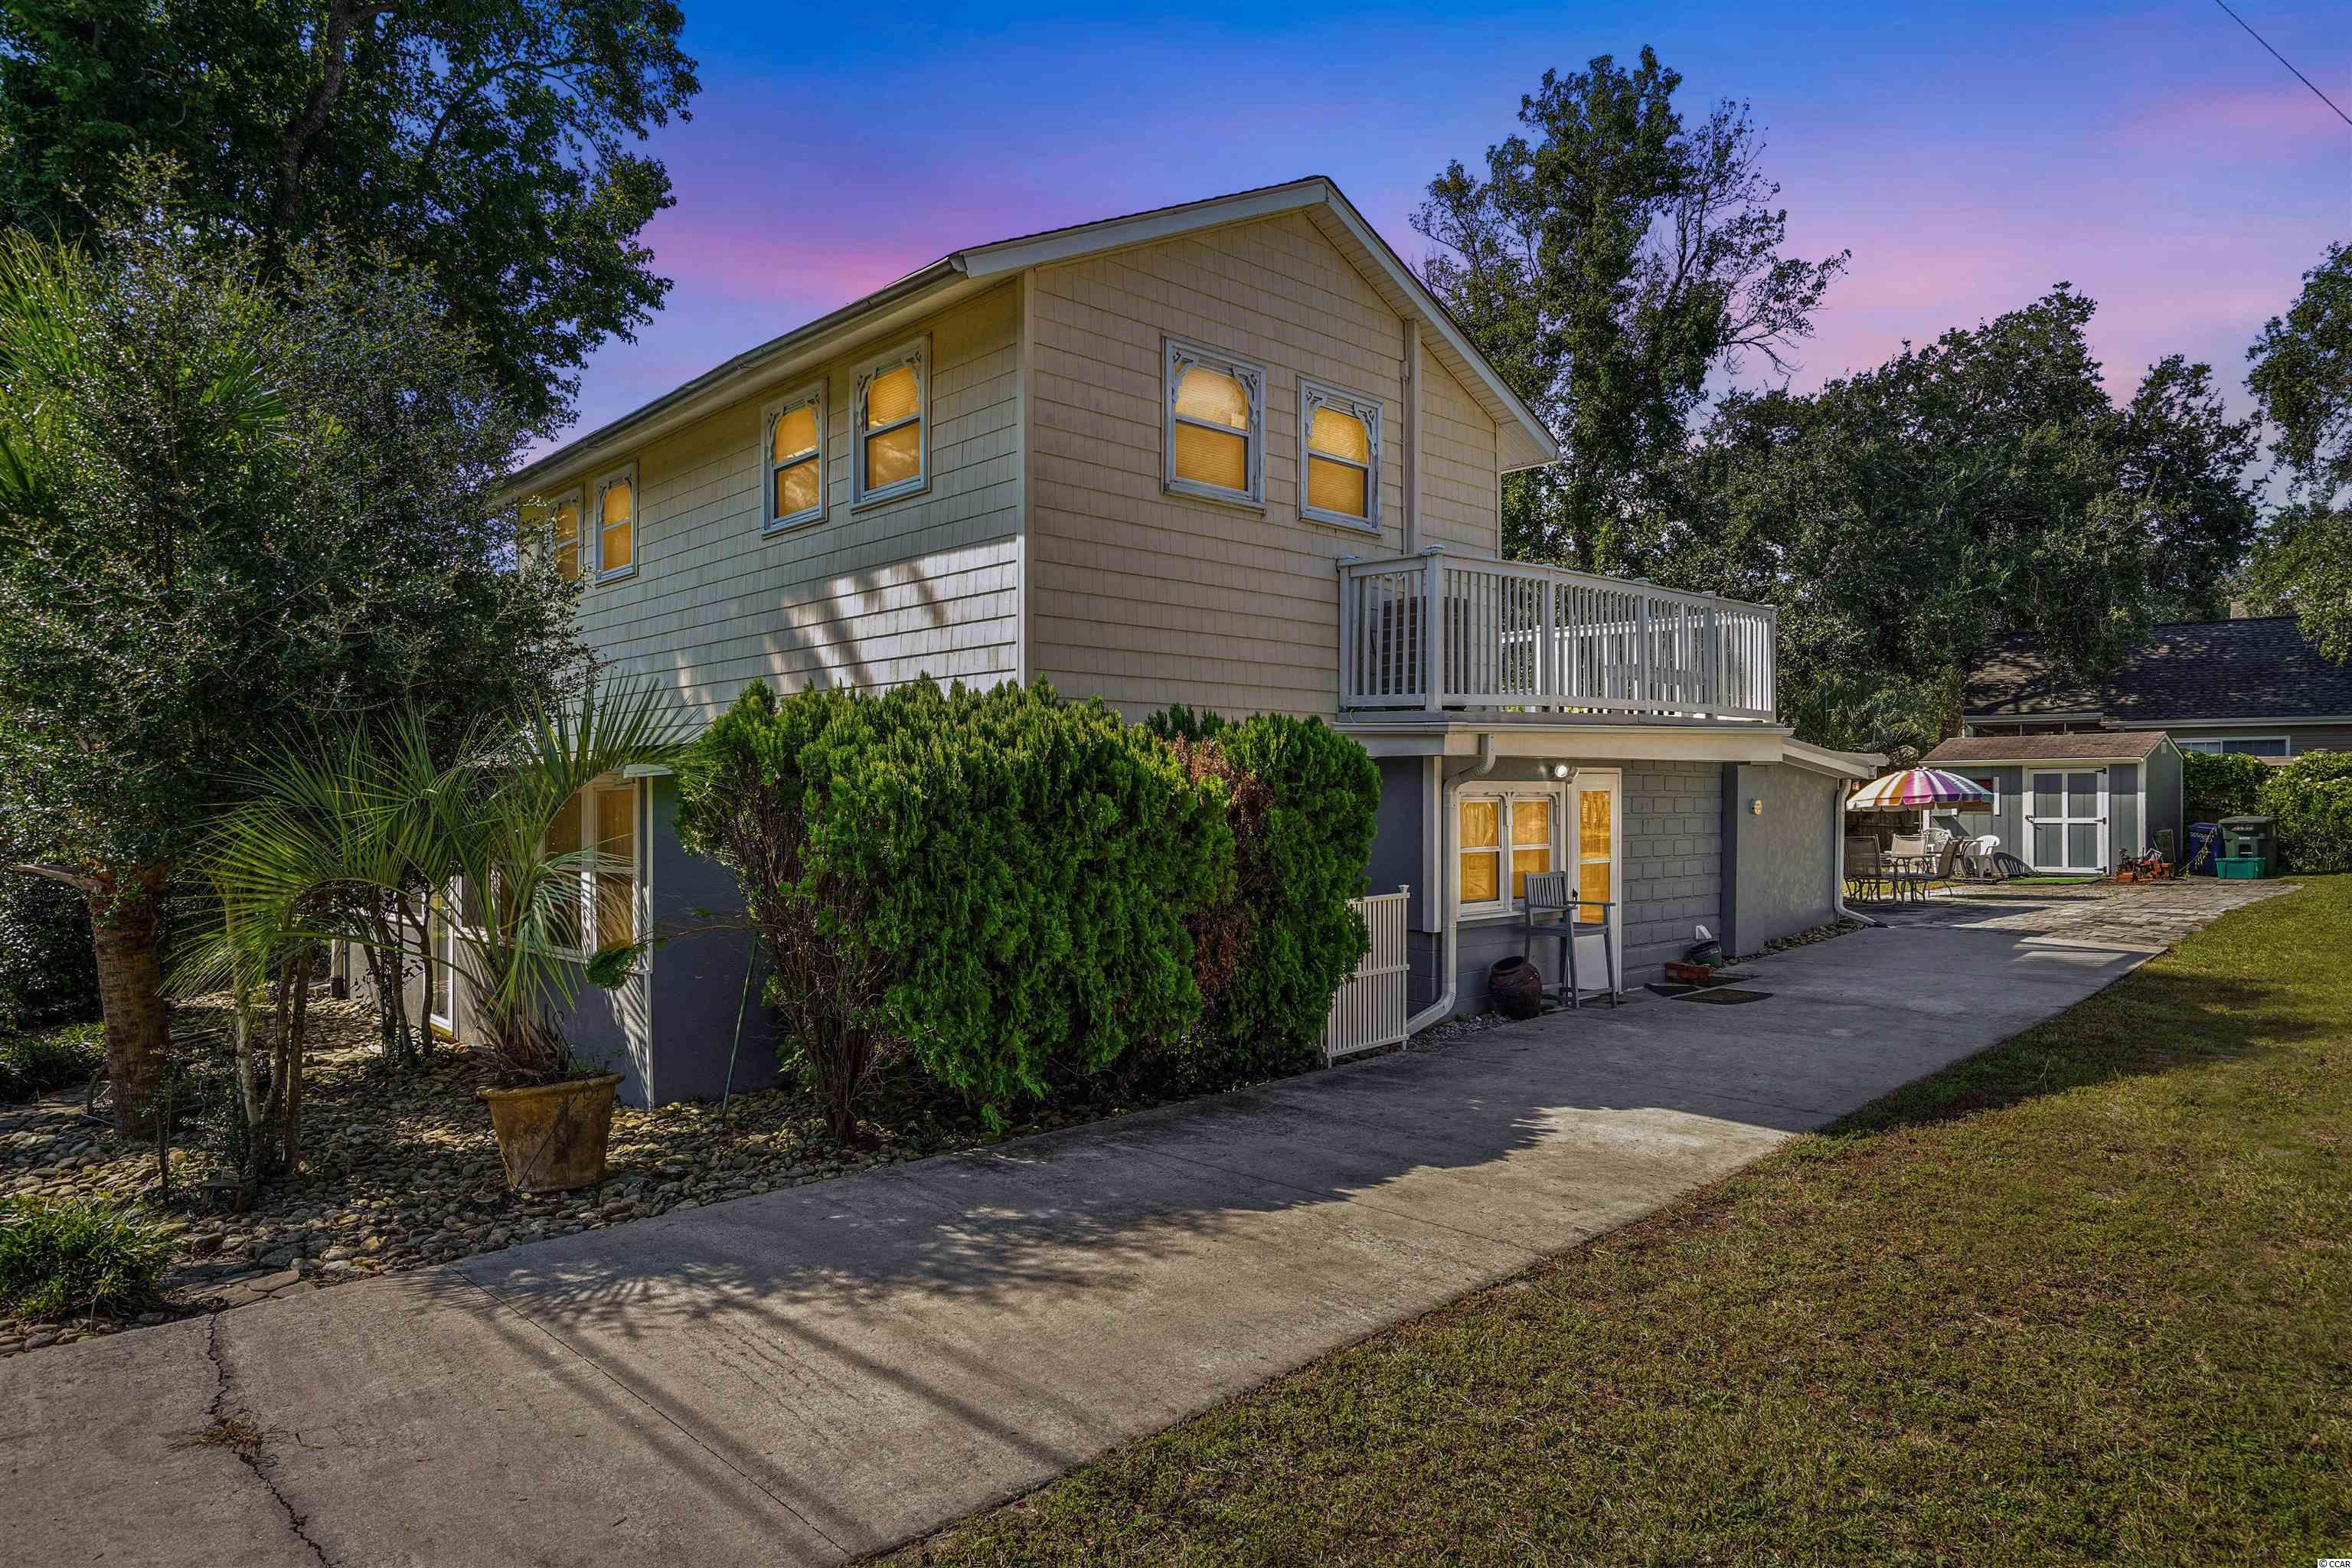 605 36th Ave. S North Myrtle Beach, SC 29582